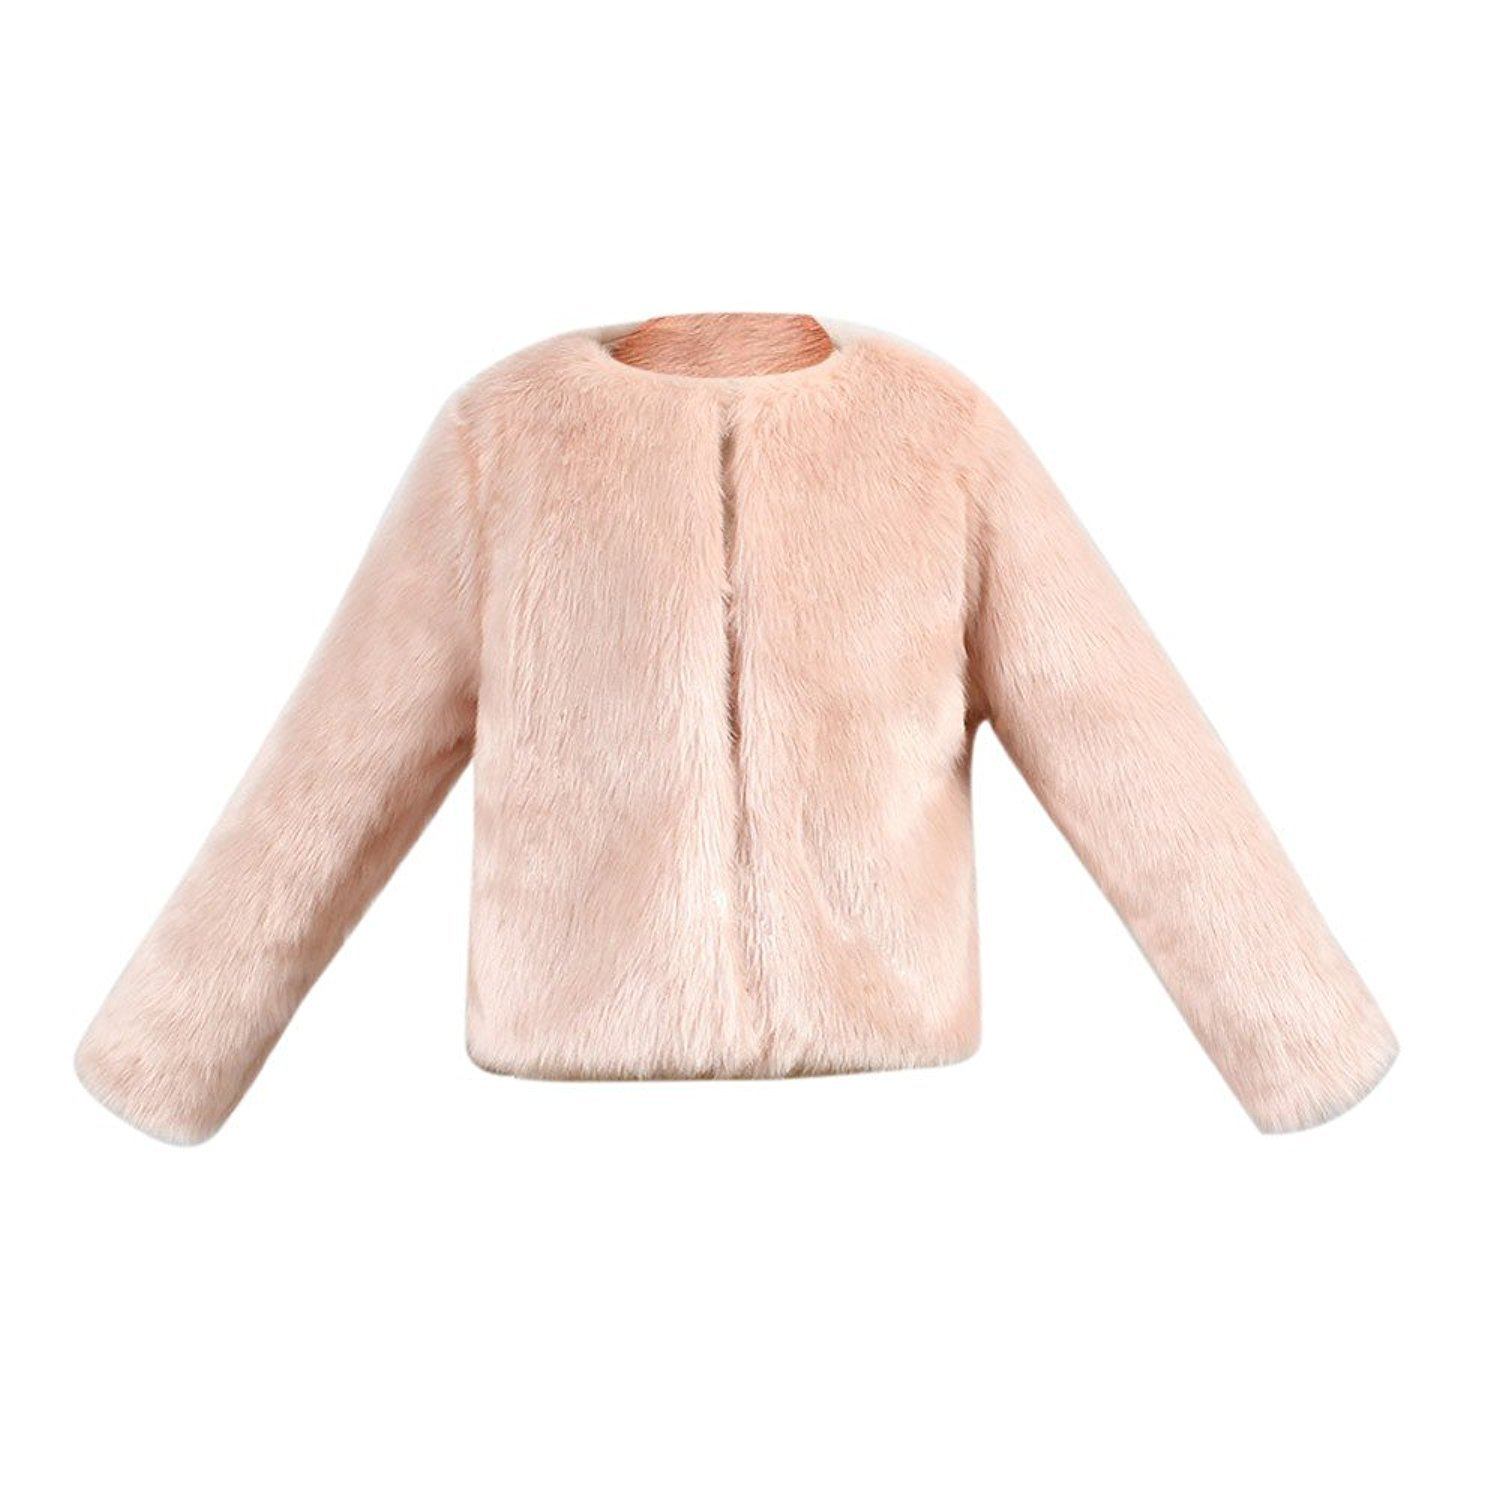 217583036 Mumustar Princess Girls Soft Faux Fur Coat Fashion Pink Thicken Warm Winter  Jacket Outfits For Girls Age 2 3 4 5 6 7 8 9 Years